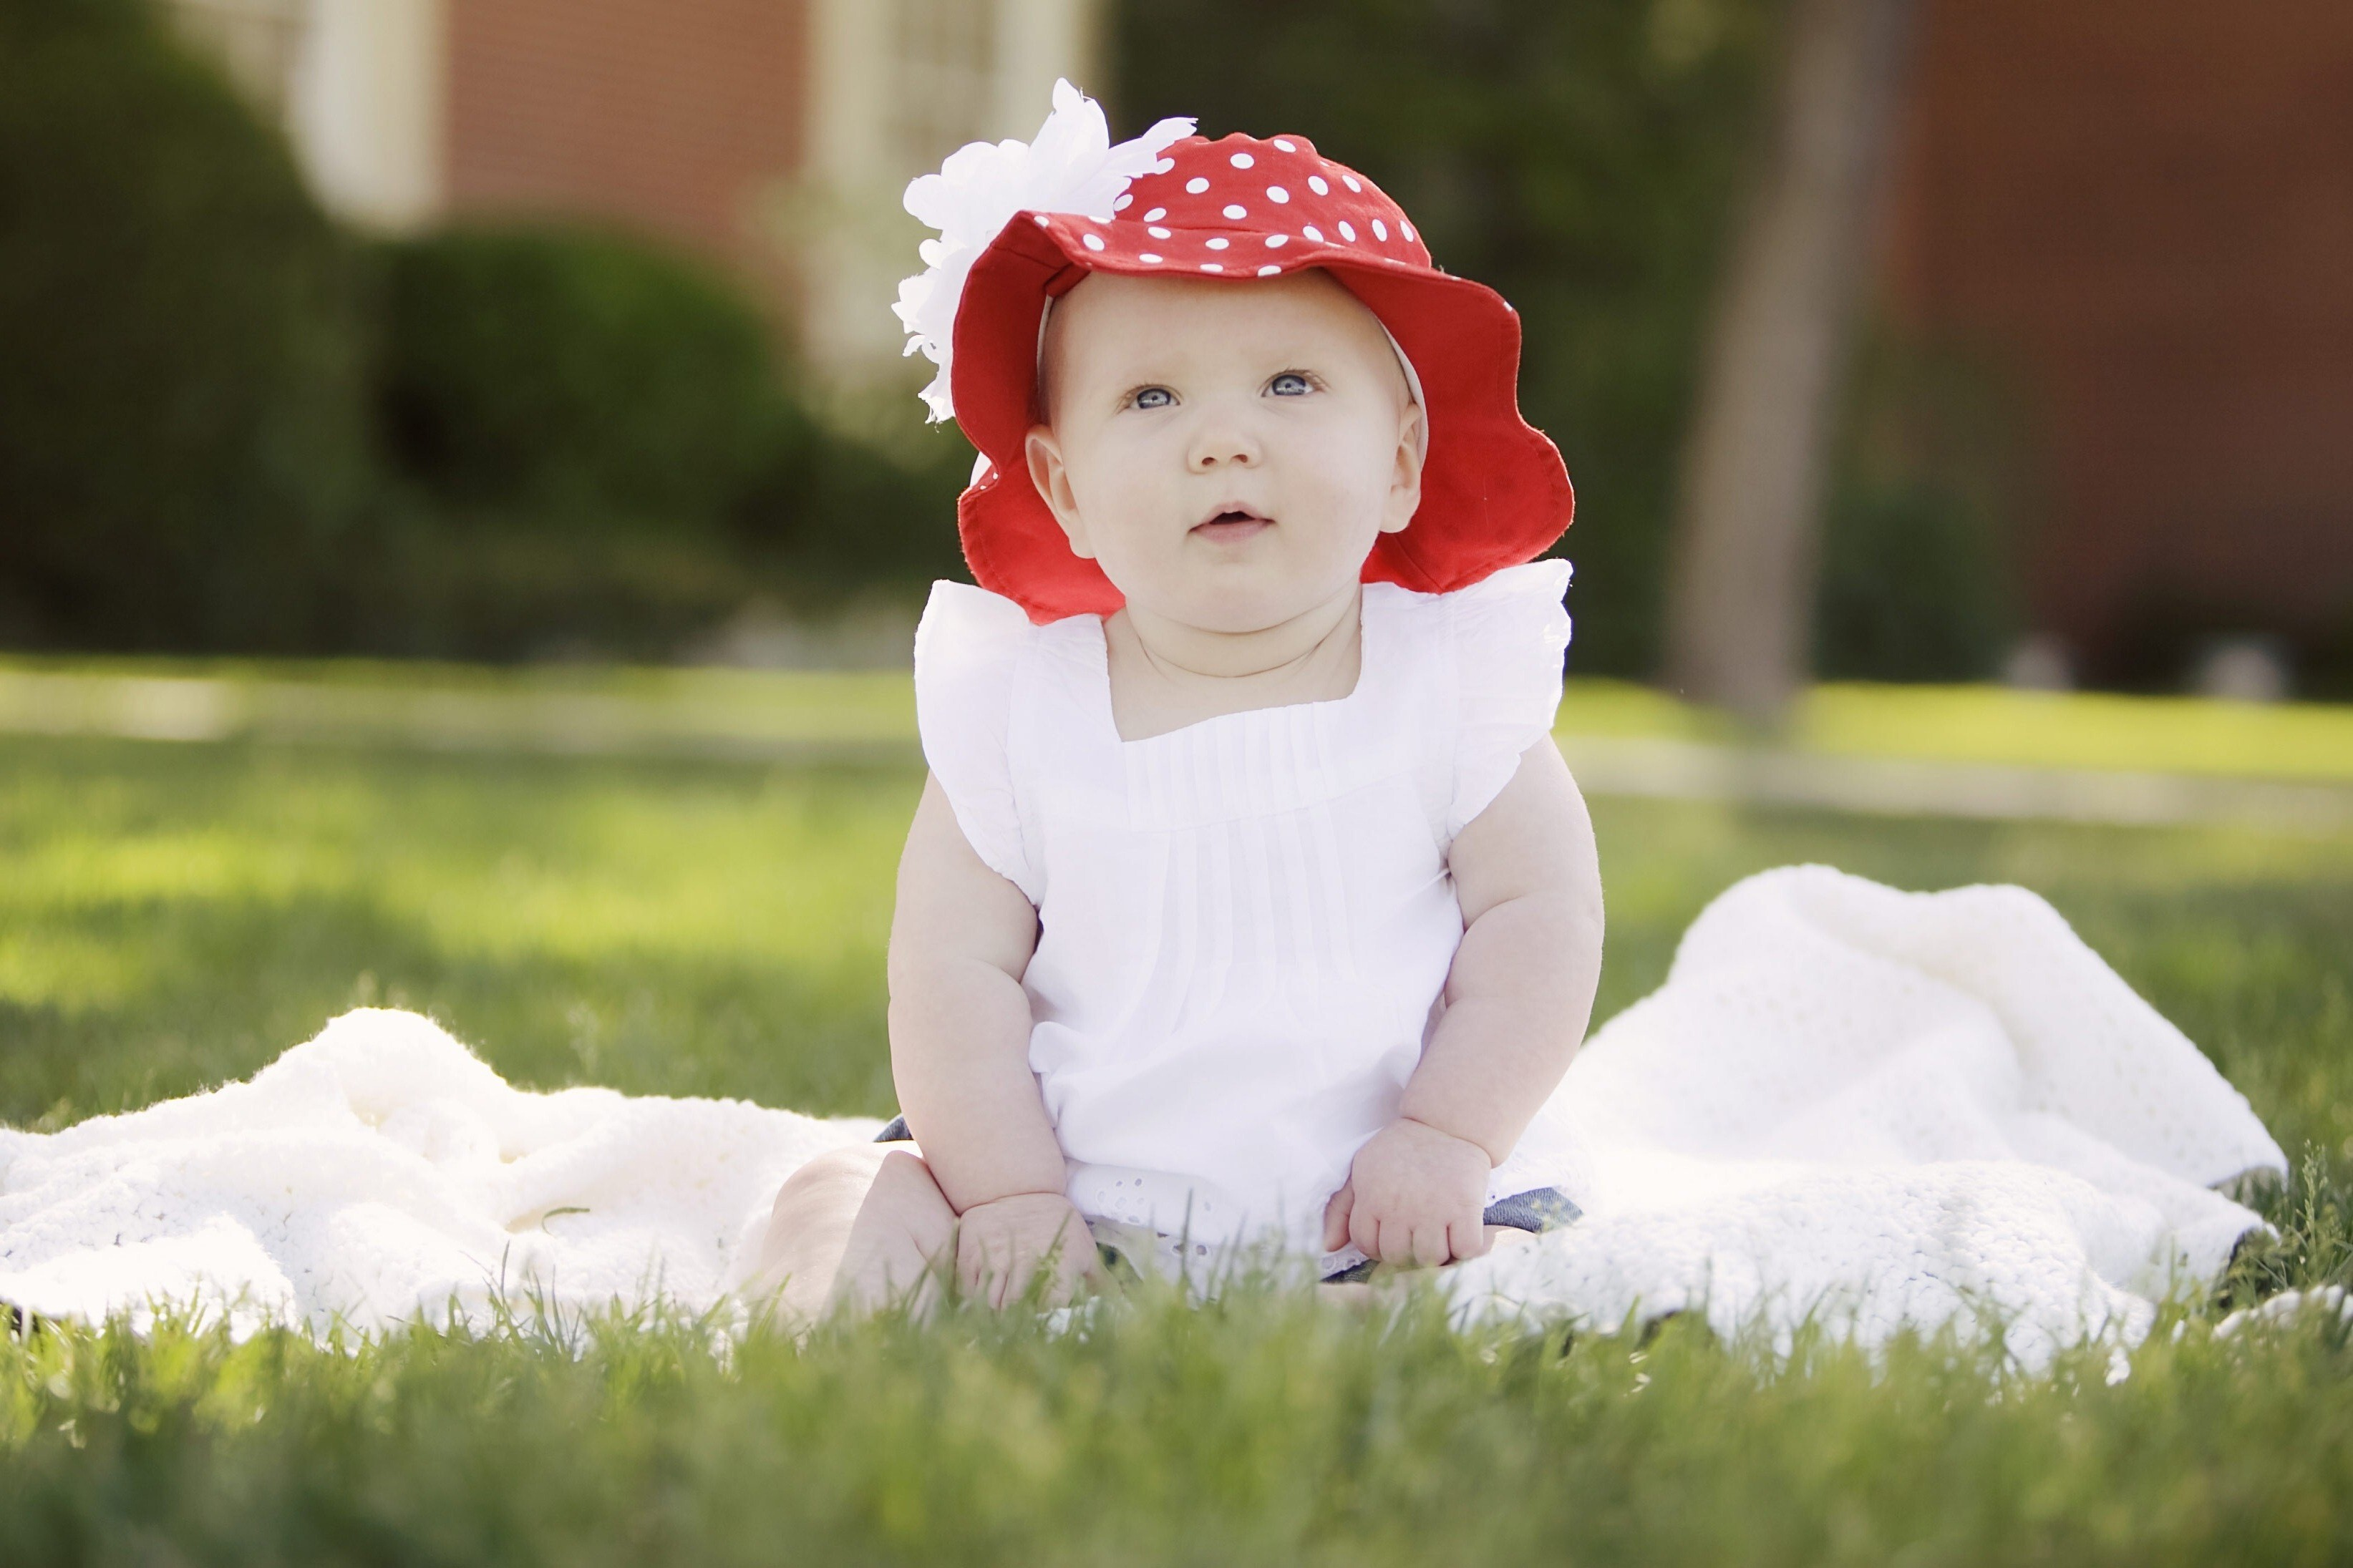 Beautiful cute baby girl hd wallpapers hd wallpapers cute baby wallpapers voltagebd Choice Image